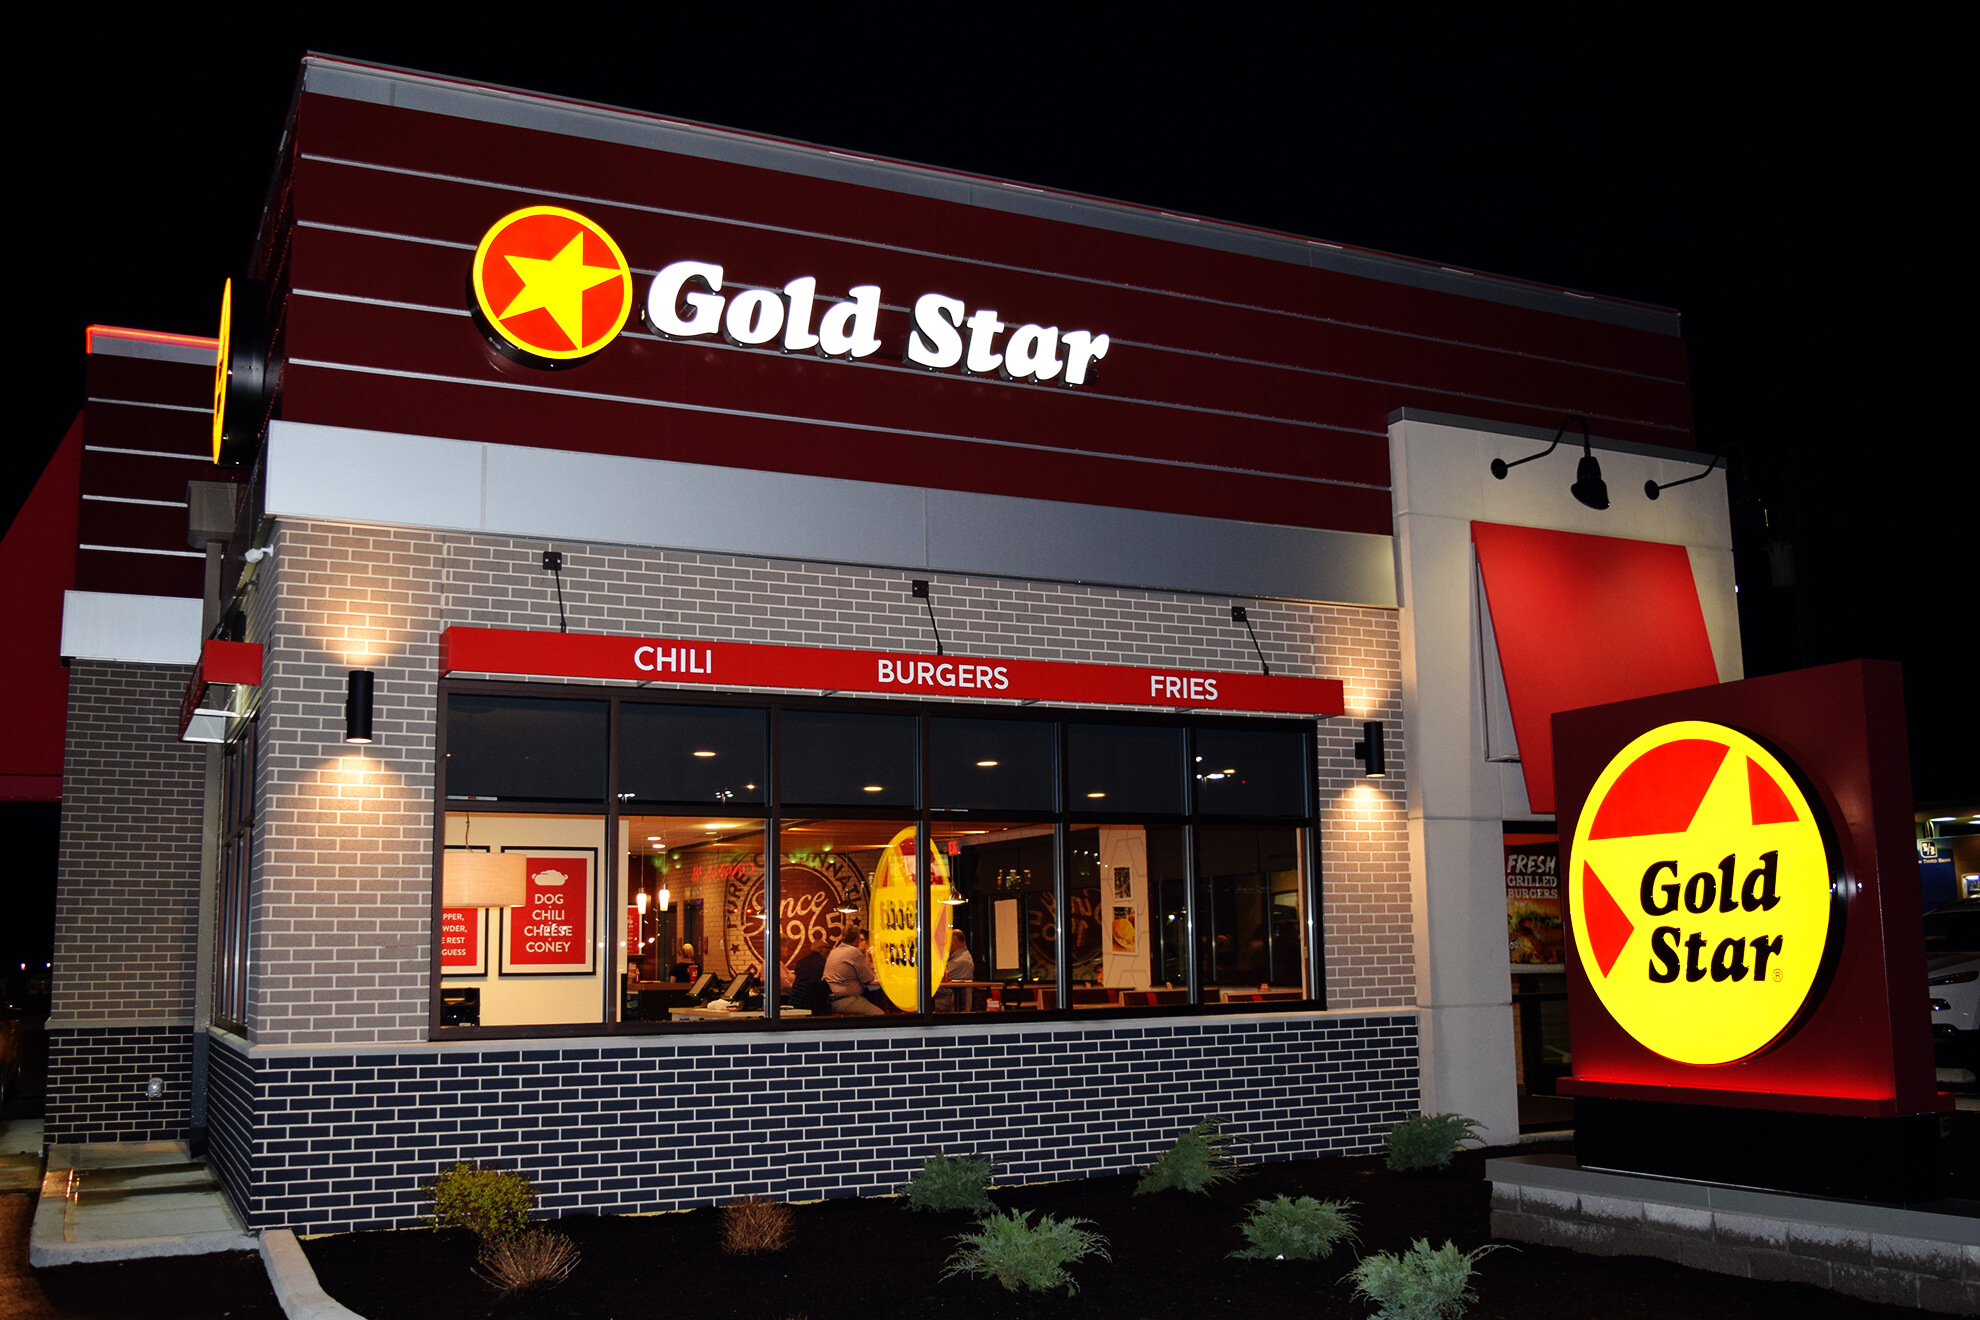 One of many awesome Cincinnati Gold Star Chili chain restaurant rebrandings we've done